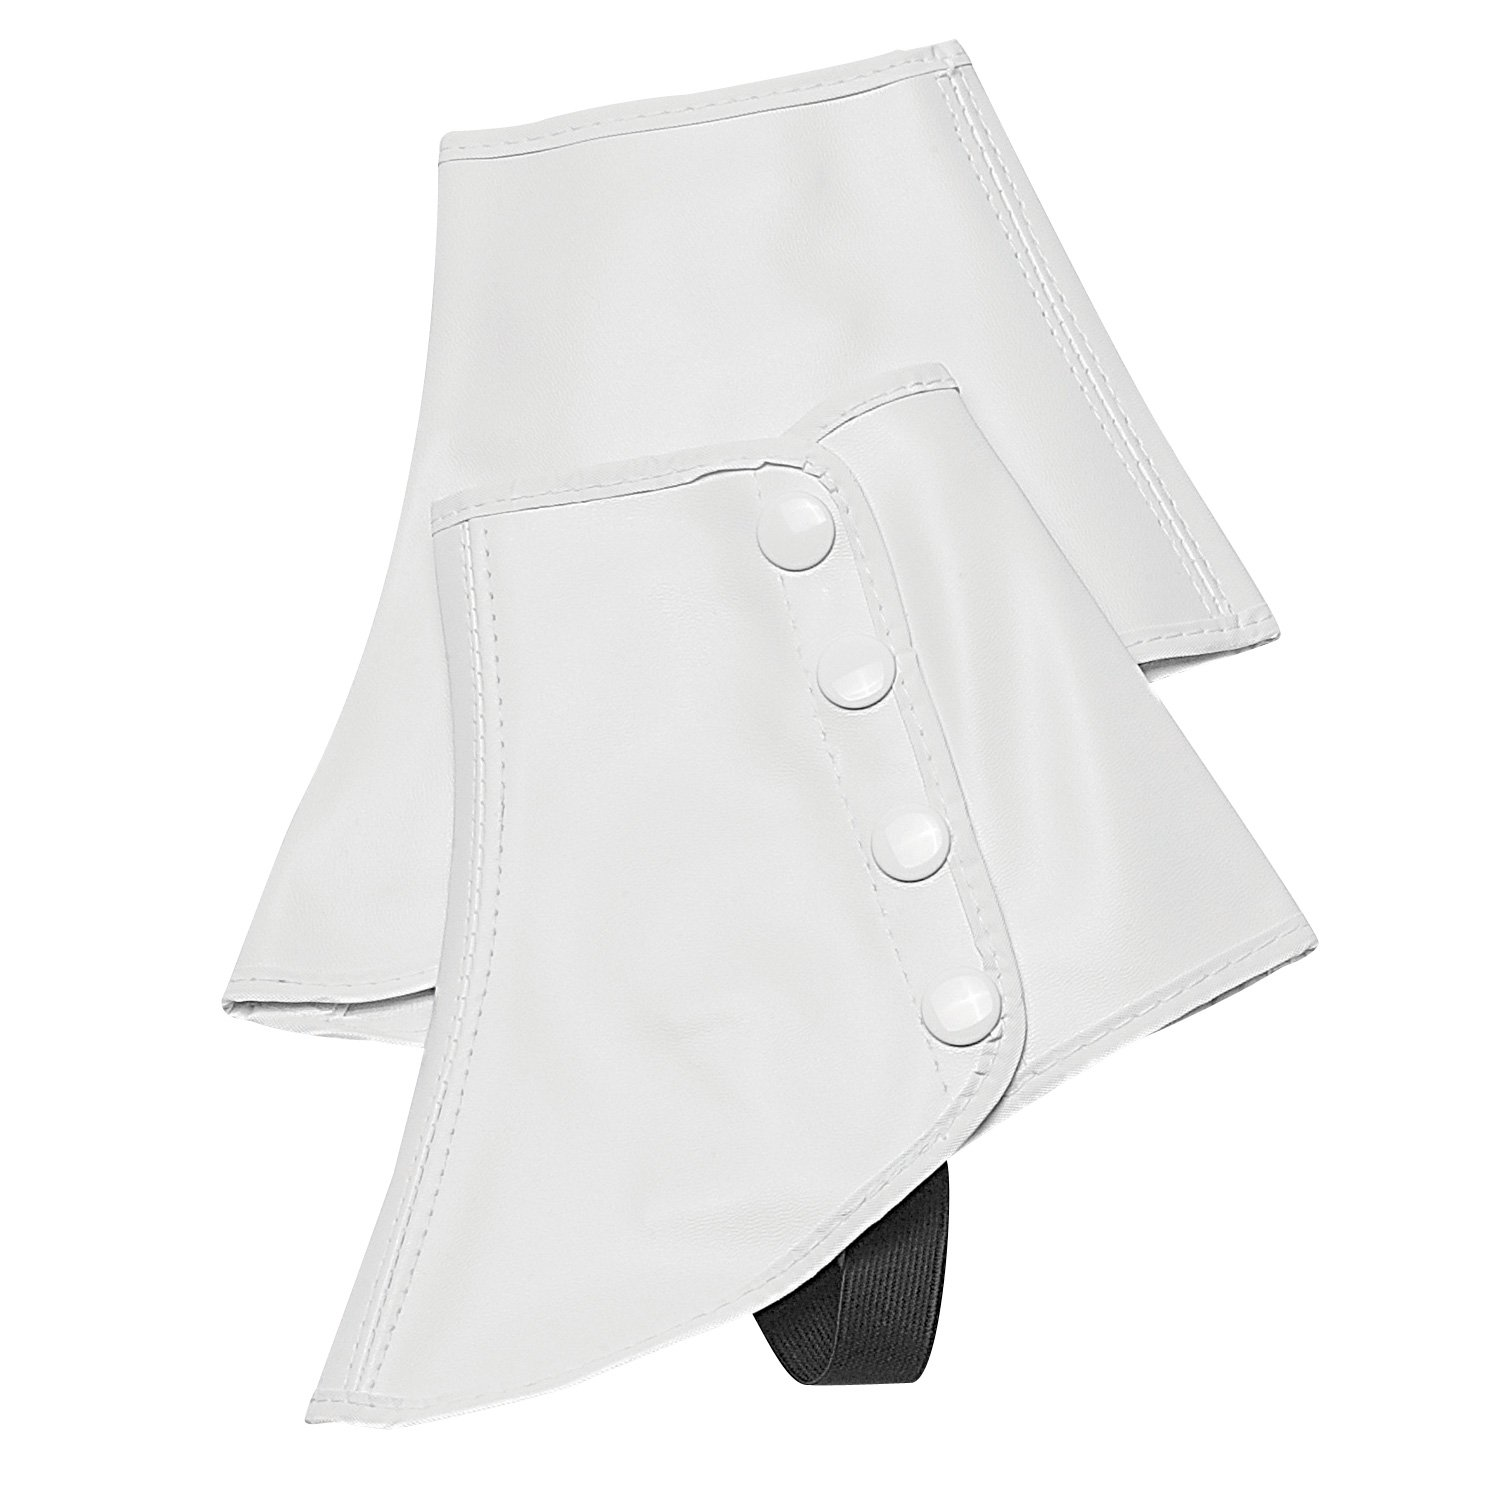 Victorian Men's Costumes: Mad Hatter, Rhet Butler, Willy Wonka Snap Spats (White Large) by Directors Showcase (DSI) $13.95 AT vintagedancer.com